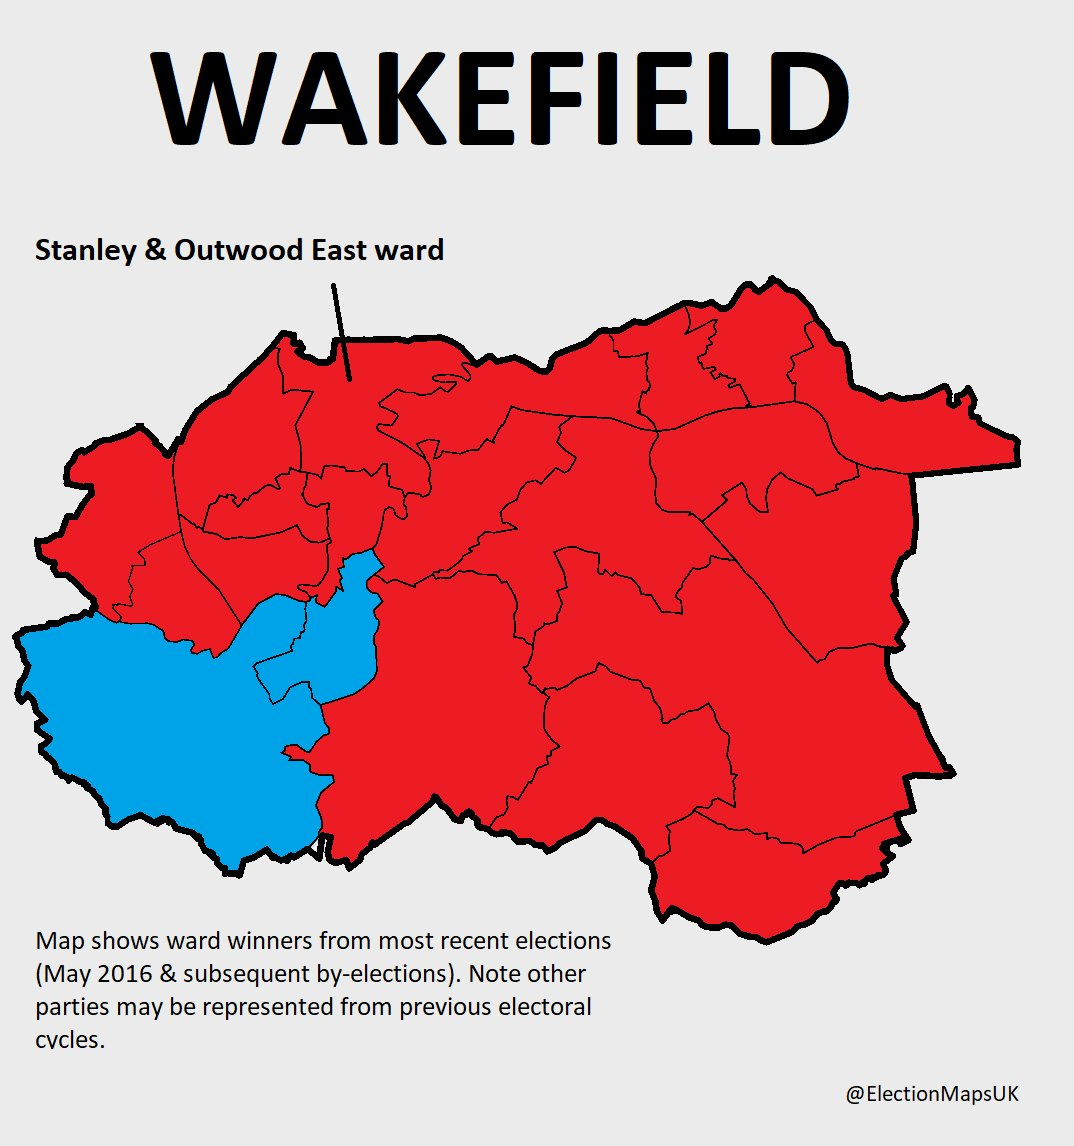 #Labour hold #Stanley and #Outwood East on #Wakefield council. <br>http://pic.twitter.com/EThxqZmxKG #JC4PM #JezWeCan #Corbyn #COrbyn4PM #ToriesOUT #Jezza